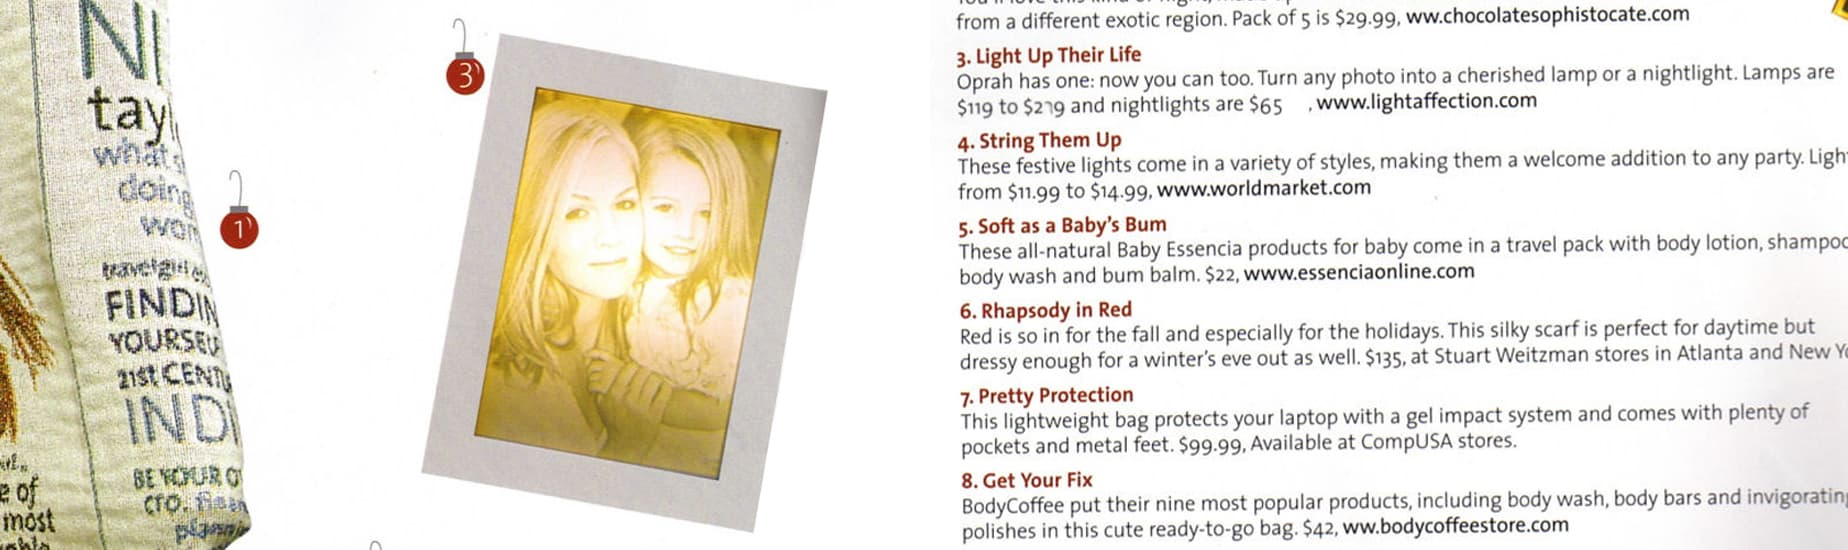 Light Affection in Travel magazine